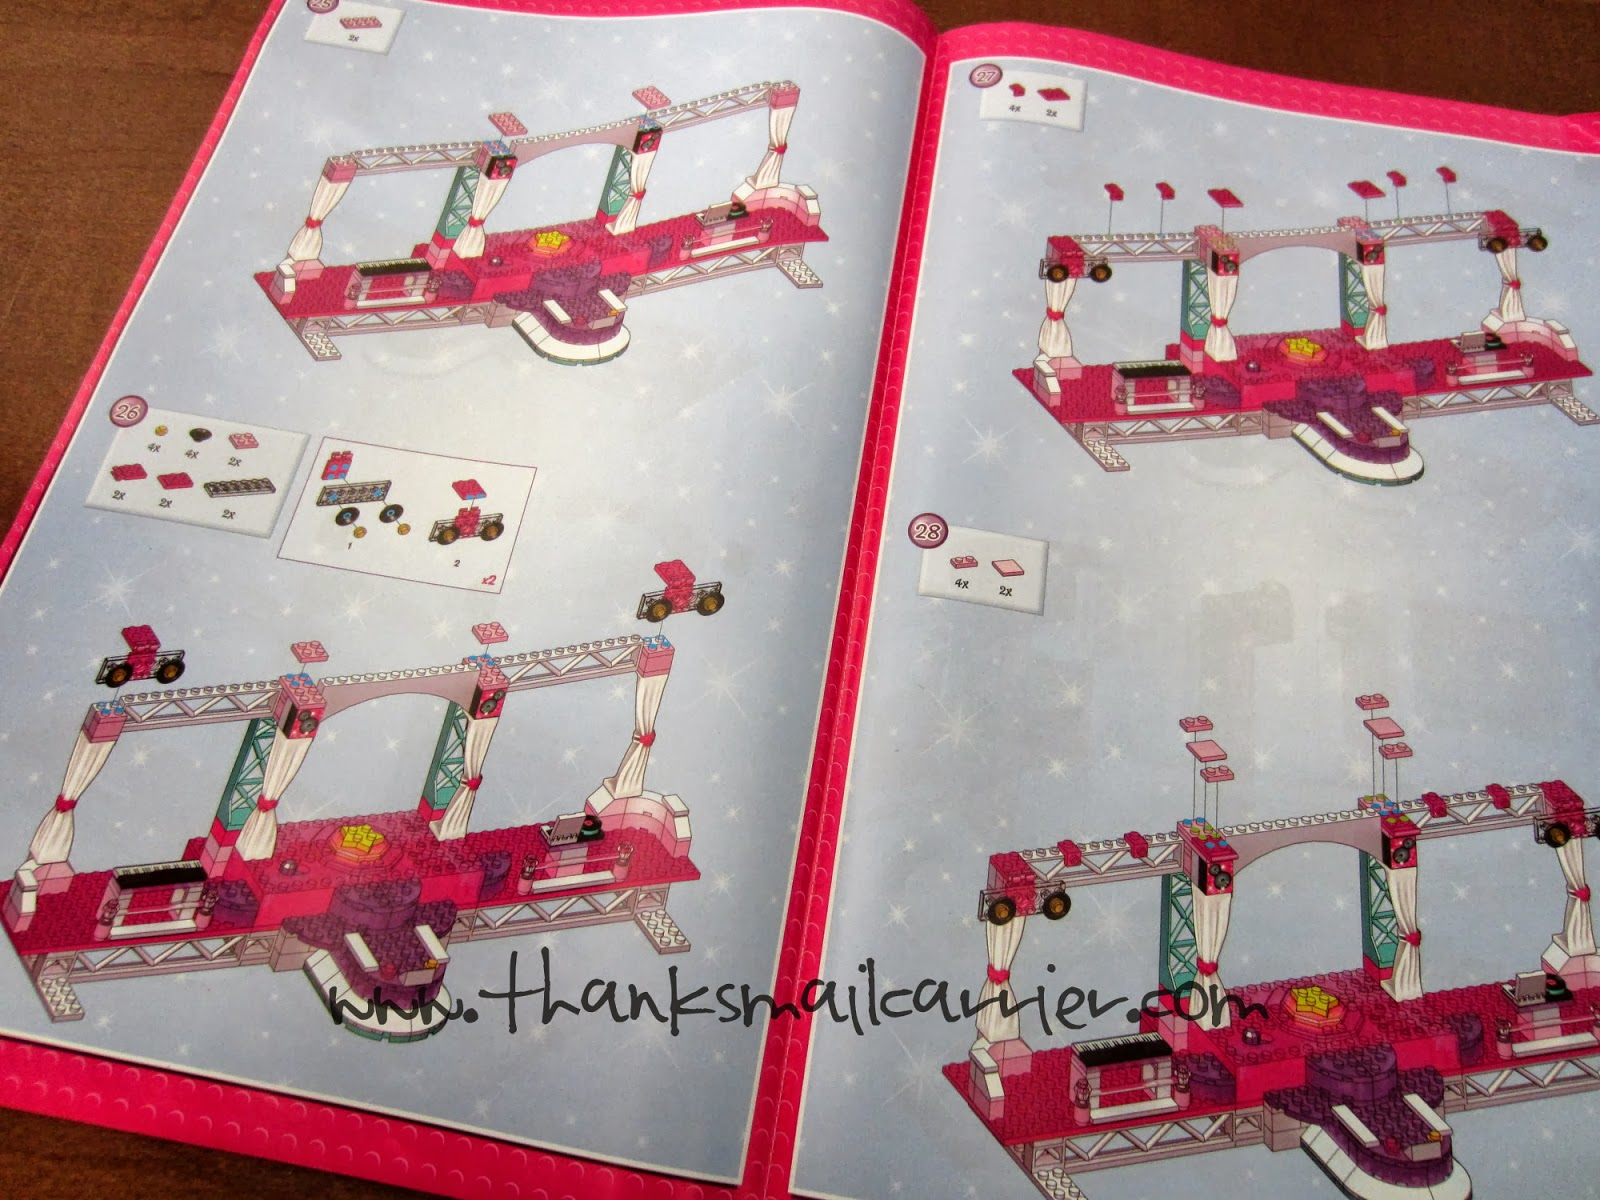 Mega Bloks Barbie Stage instructions